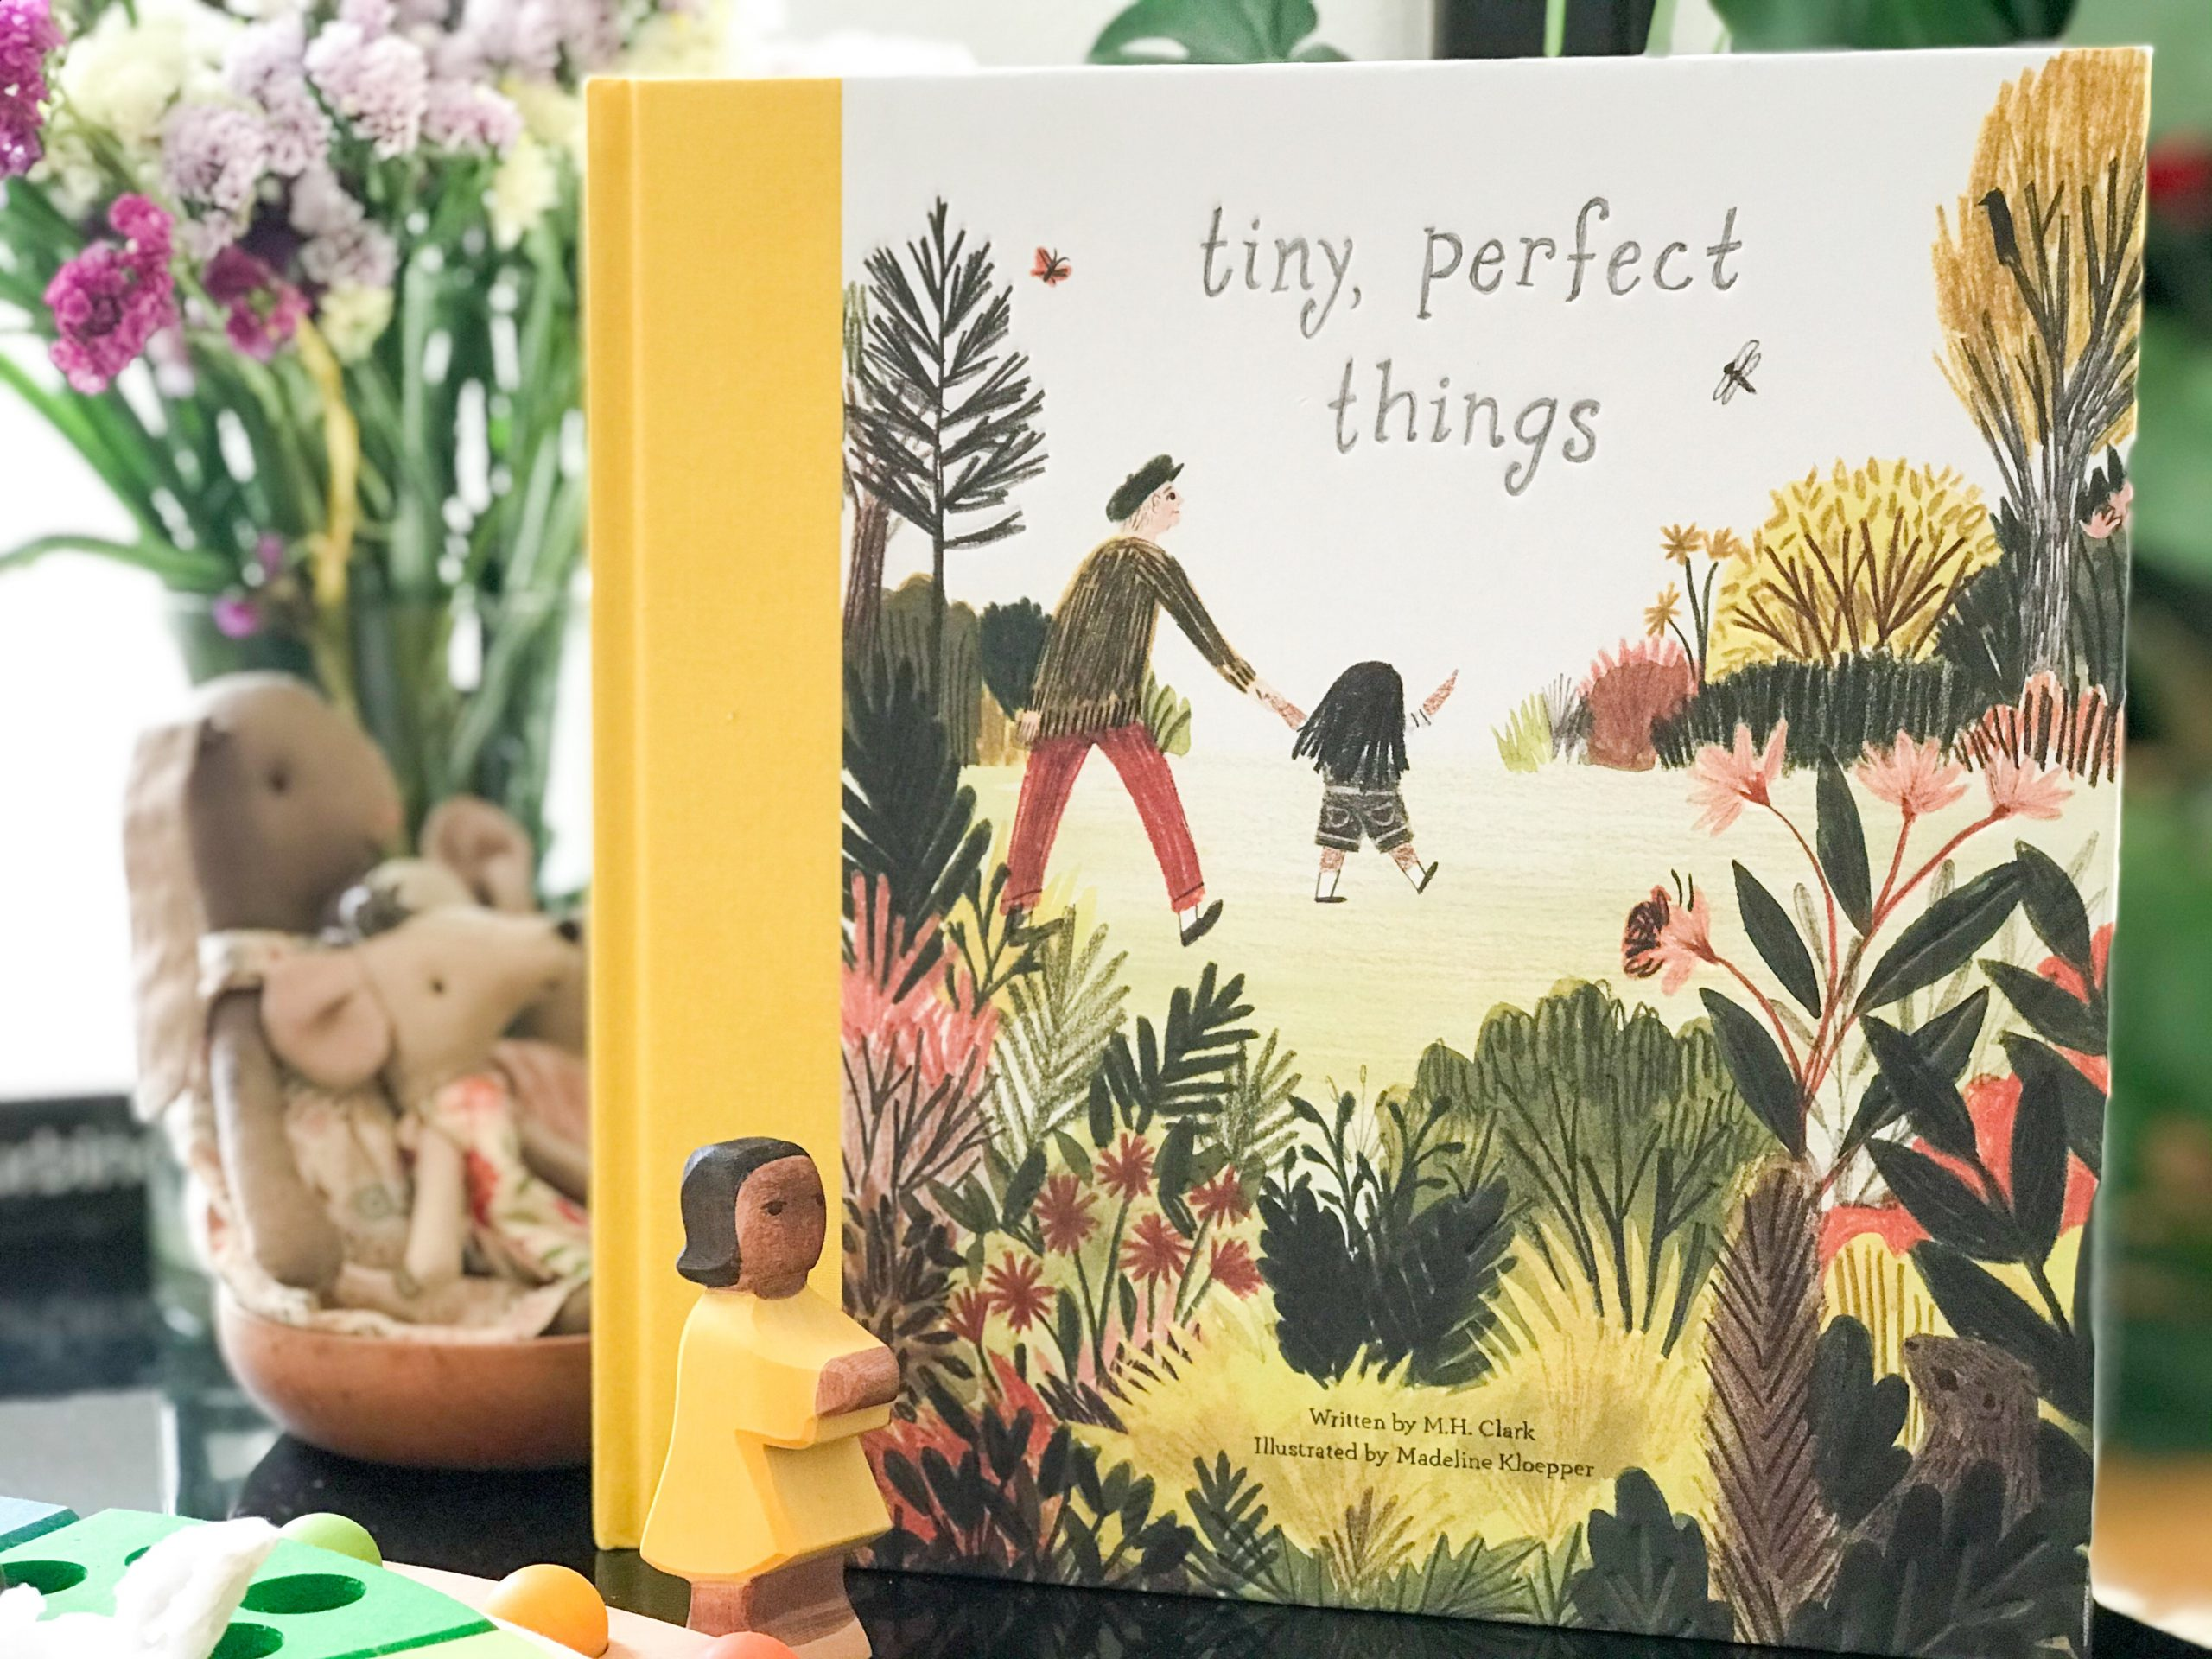 Tiny, perfect things book